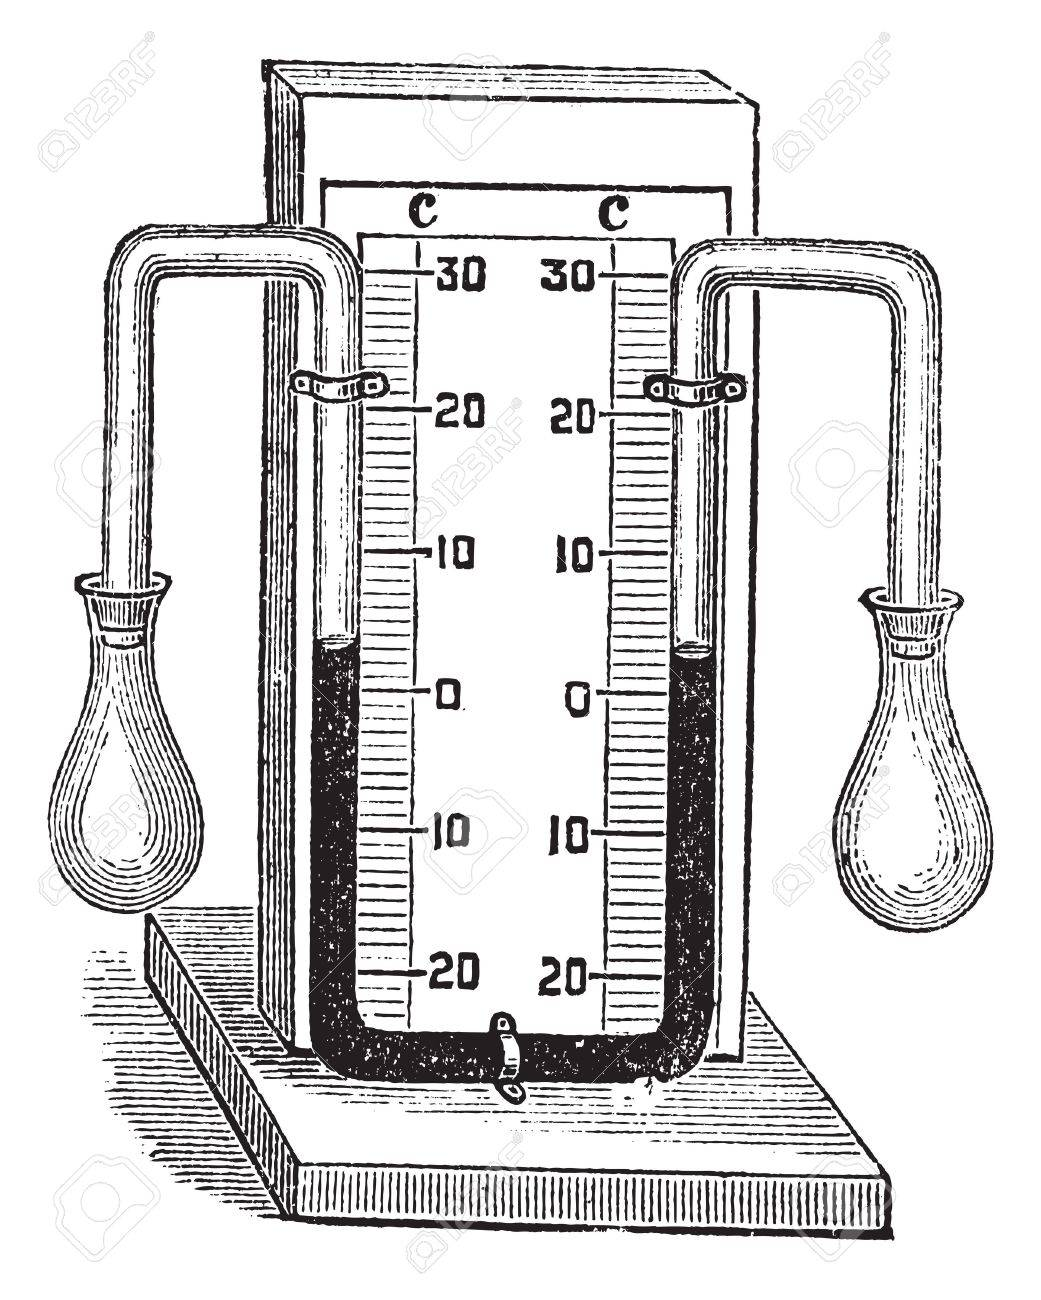 Differential thermometer. vintage engraved illustration. Medical thermometer on white. Trousset encyclopedia (1886 - 1891). Stock Vector - 13766976